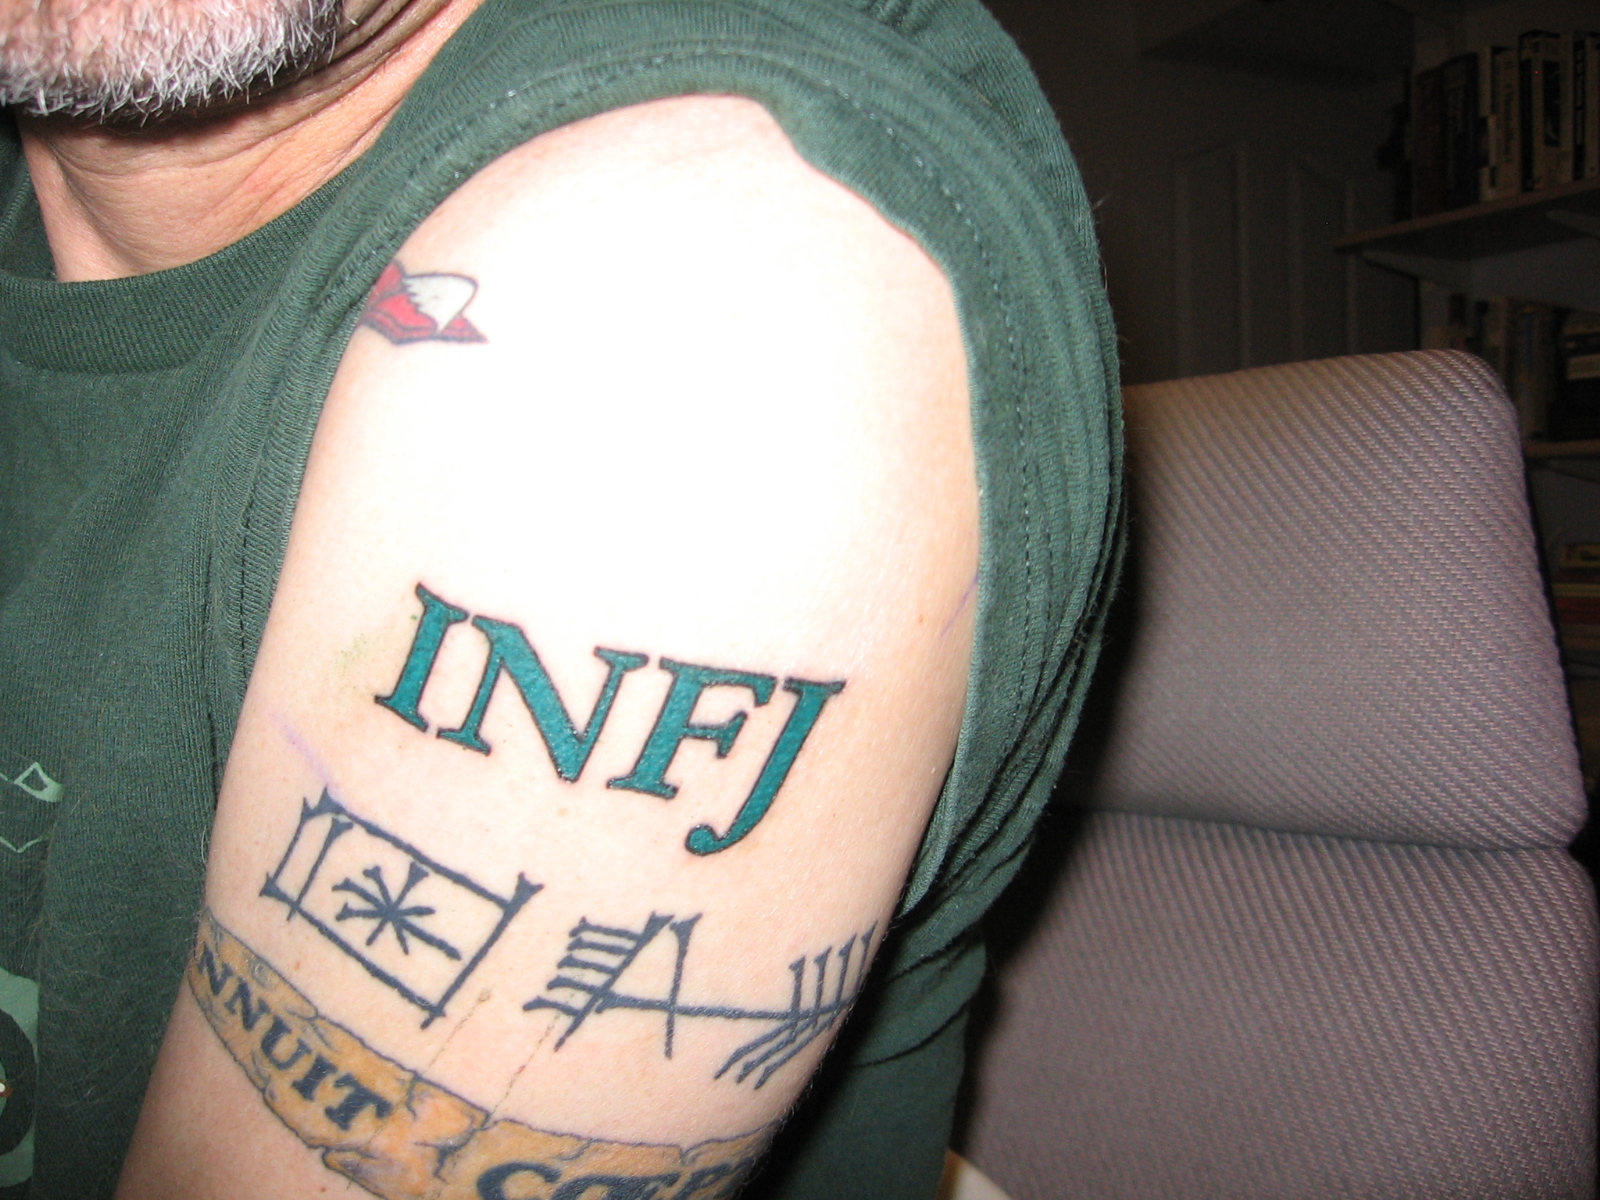 Infj and online dating